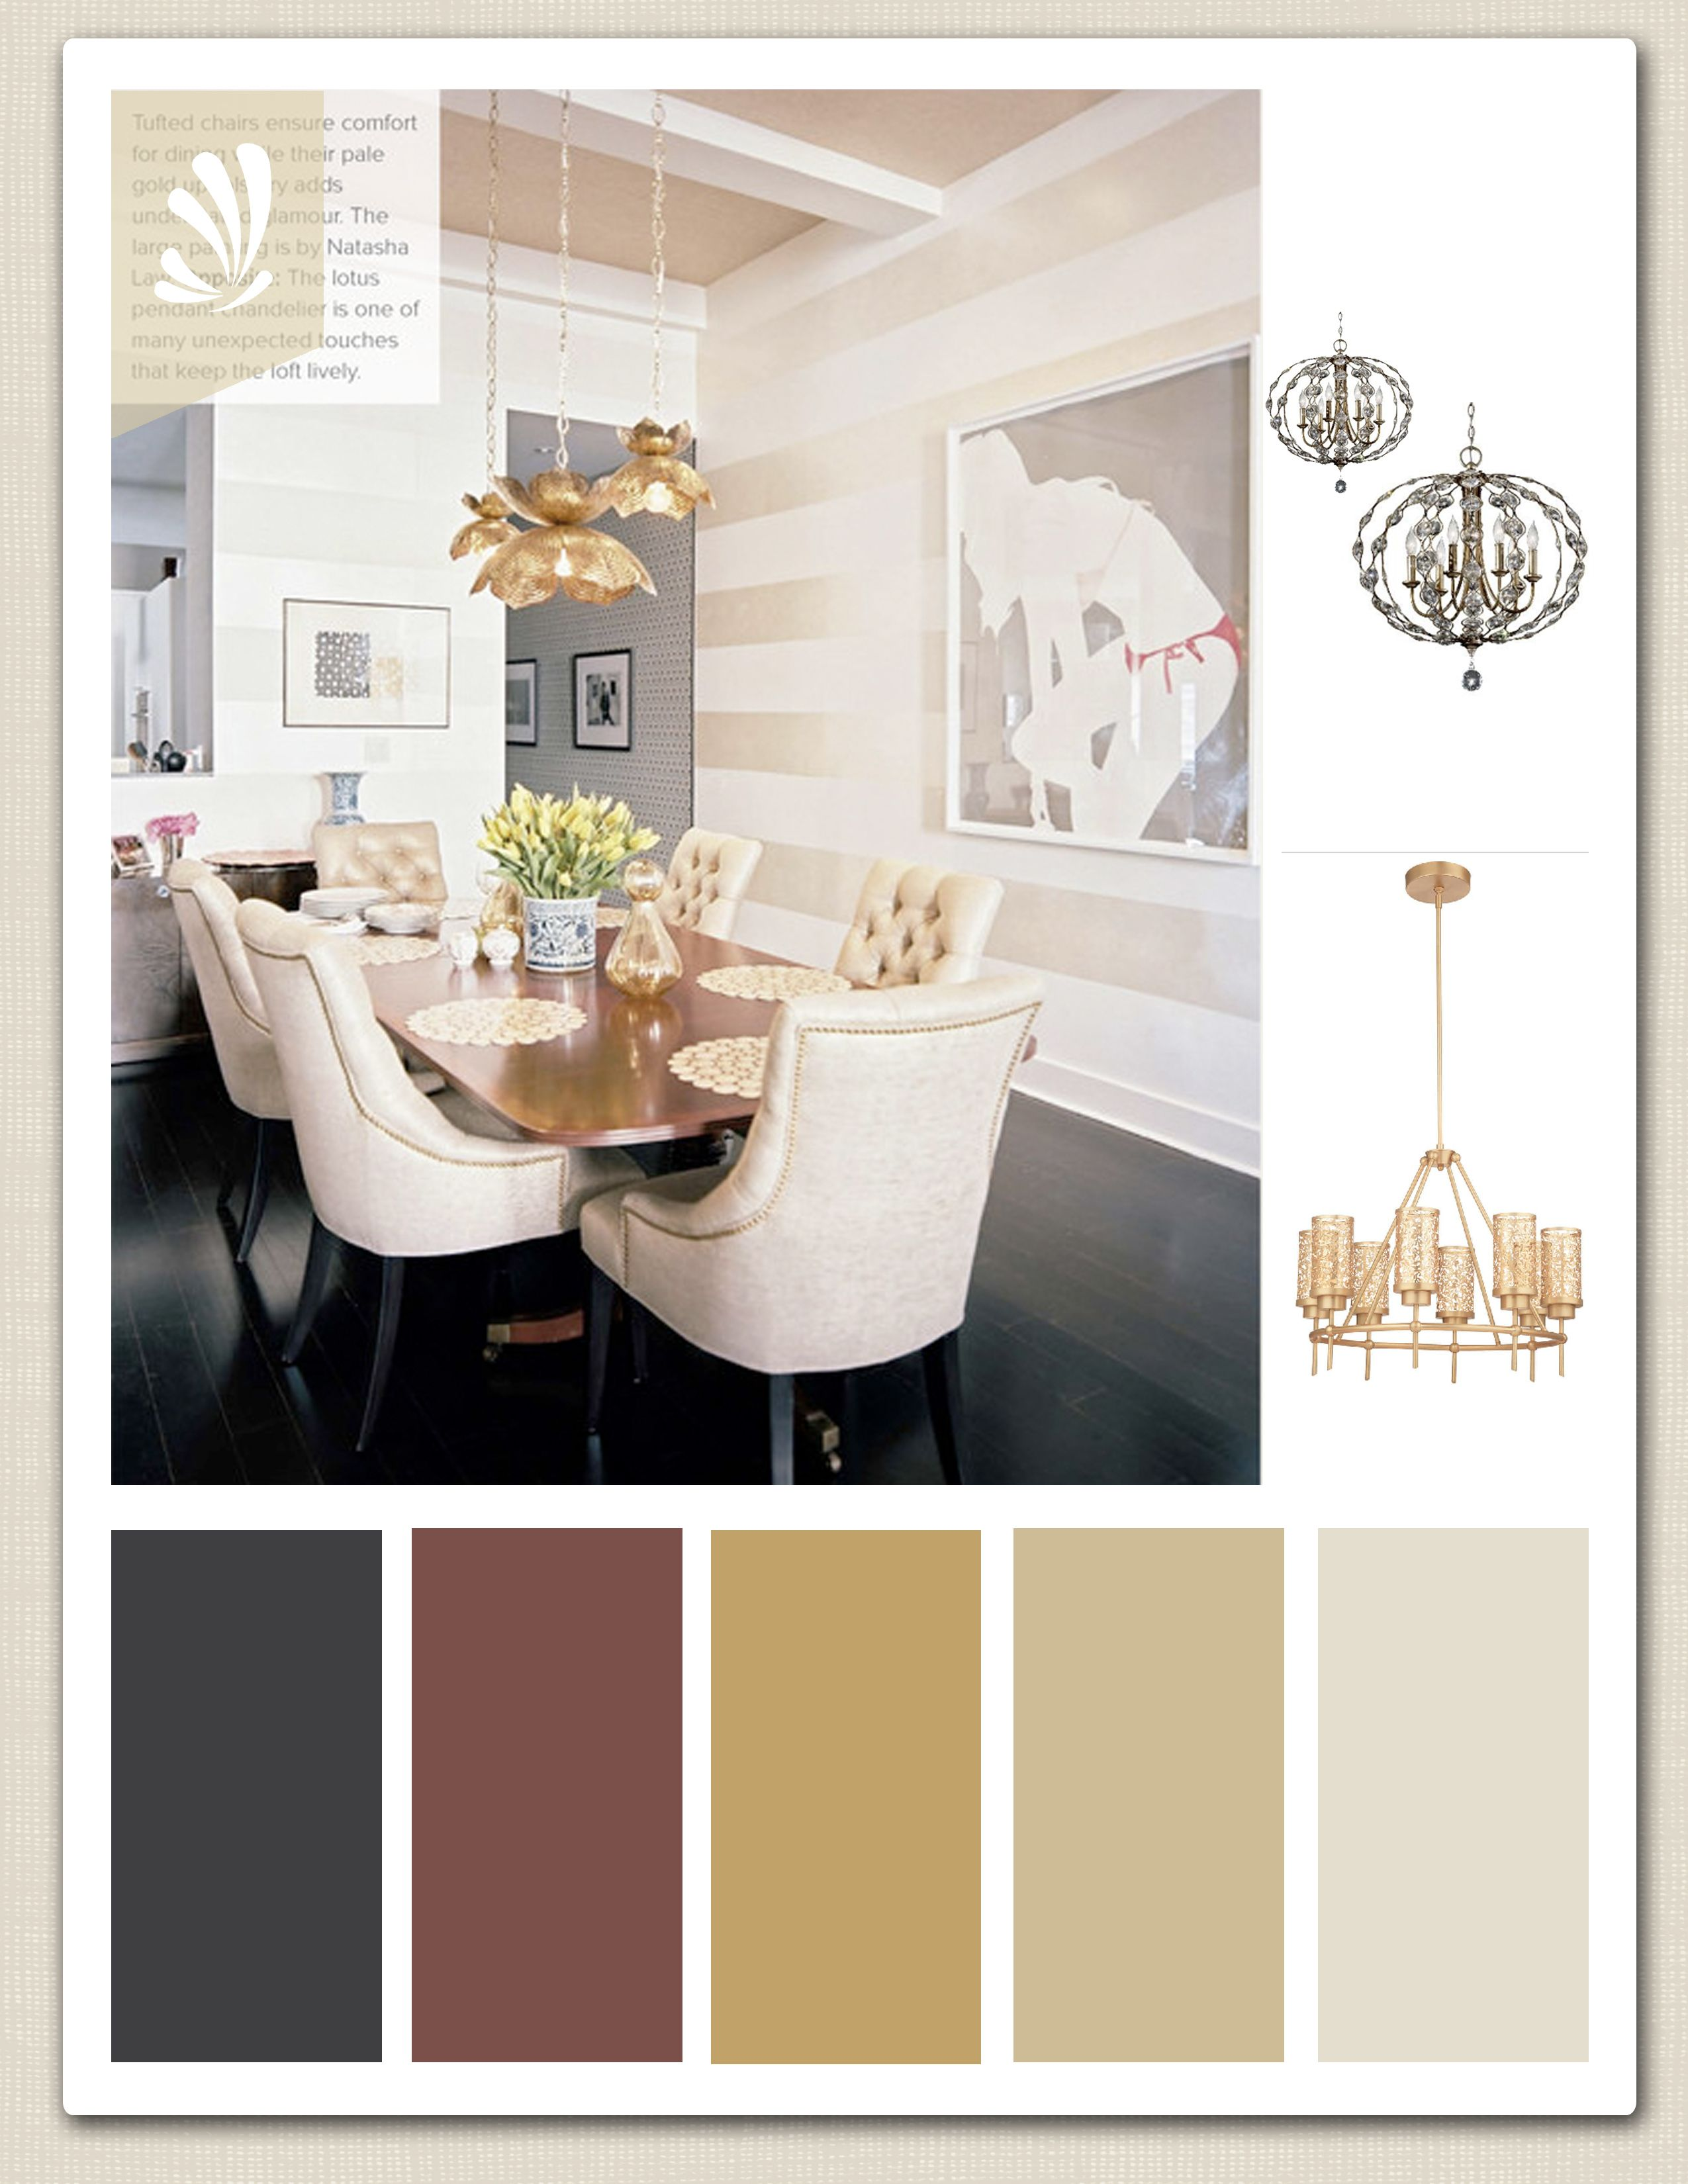 What colors are in the zen palate - Gold Cream Cranberry And Espresso Color Palette For Your Dining Room Beautiful Fixtures